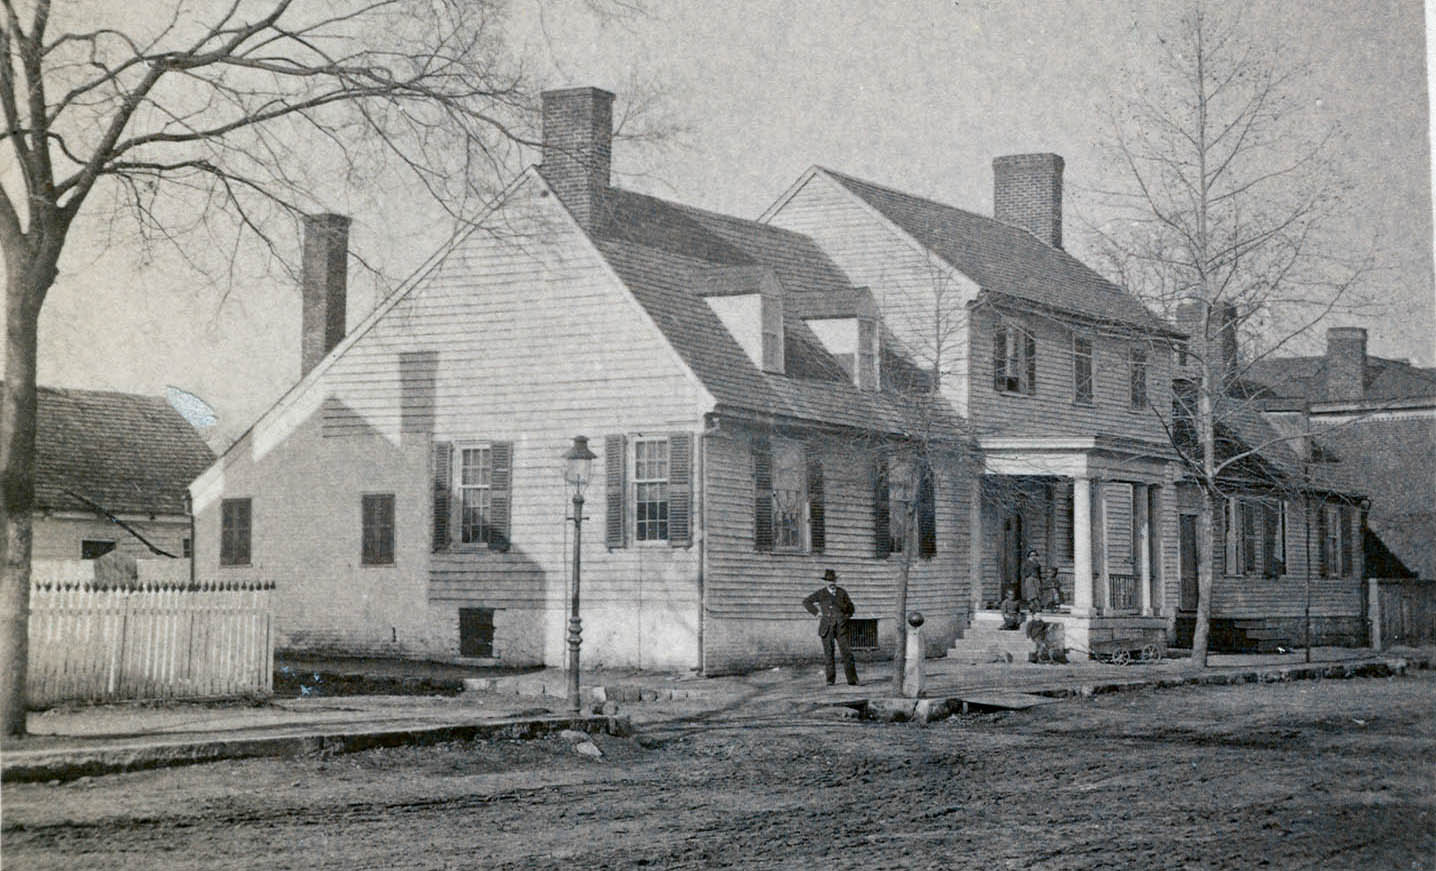 Early 20th Century photo of the Mary Washington Home